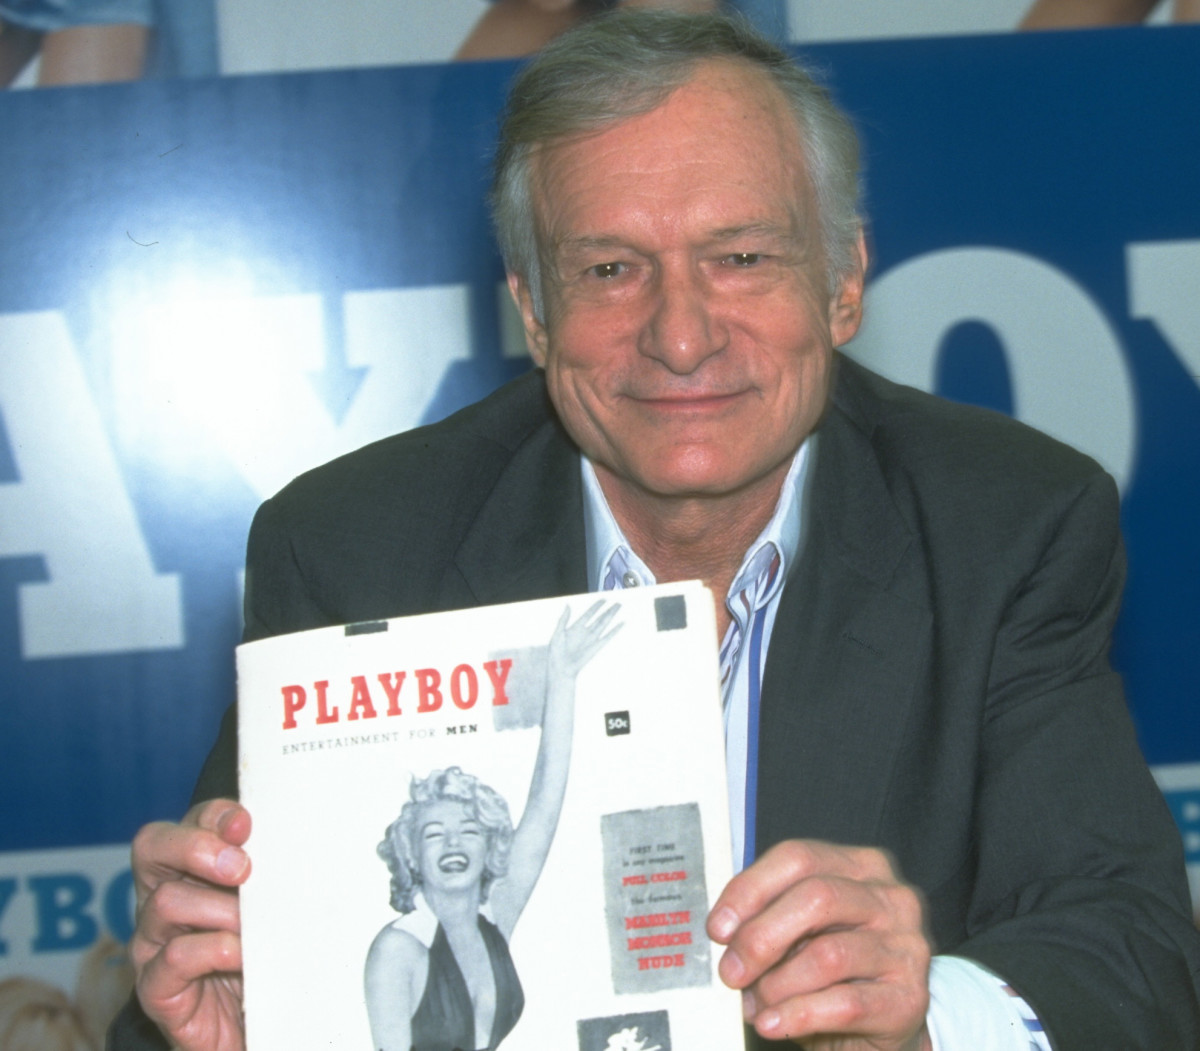 Hugh Hefner holding the first issue of Playboy, featuring Marilyn Monroe on the cover